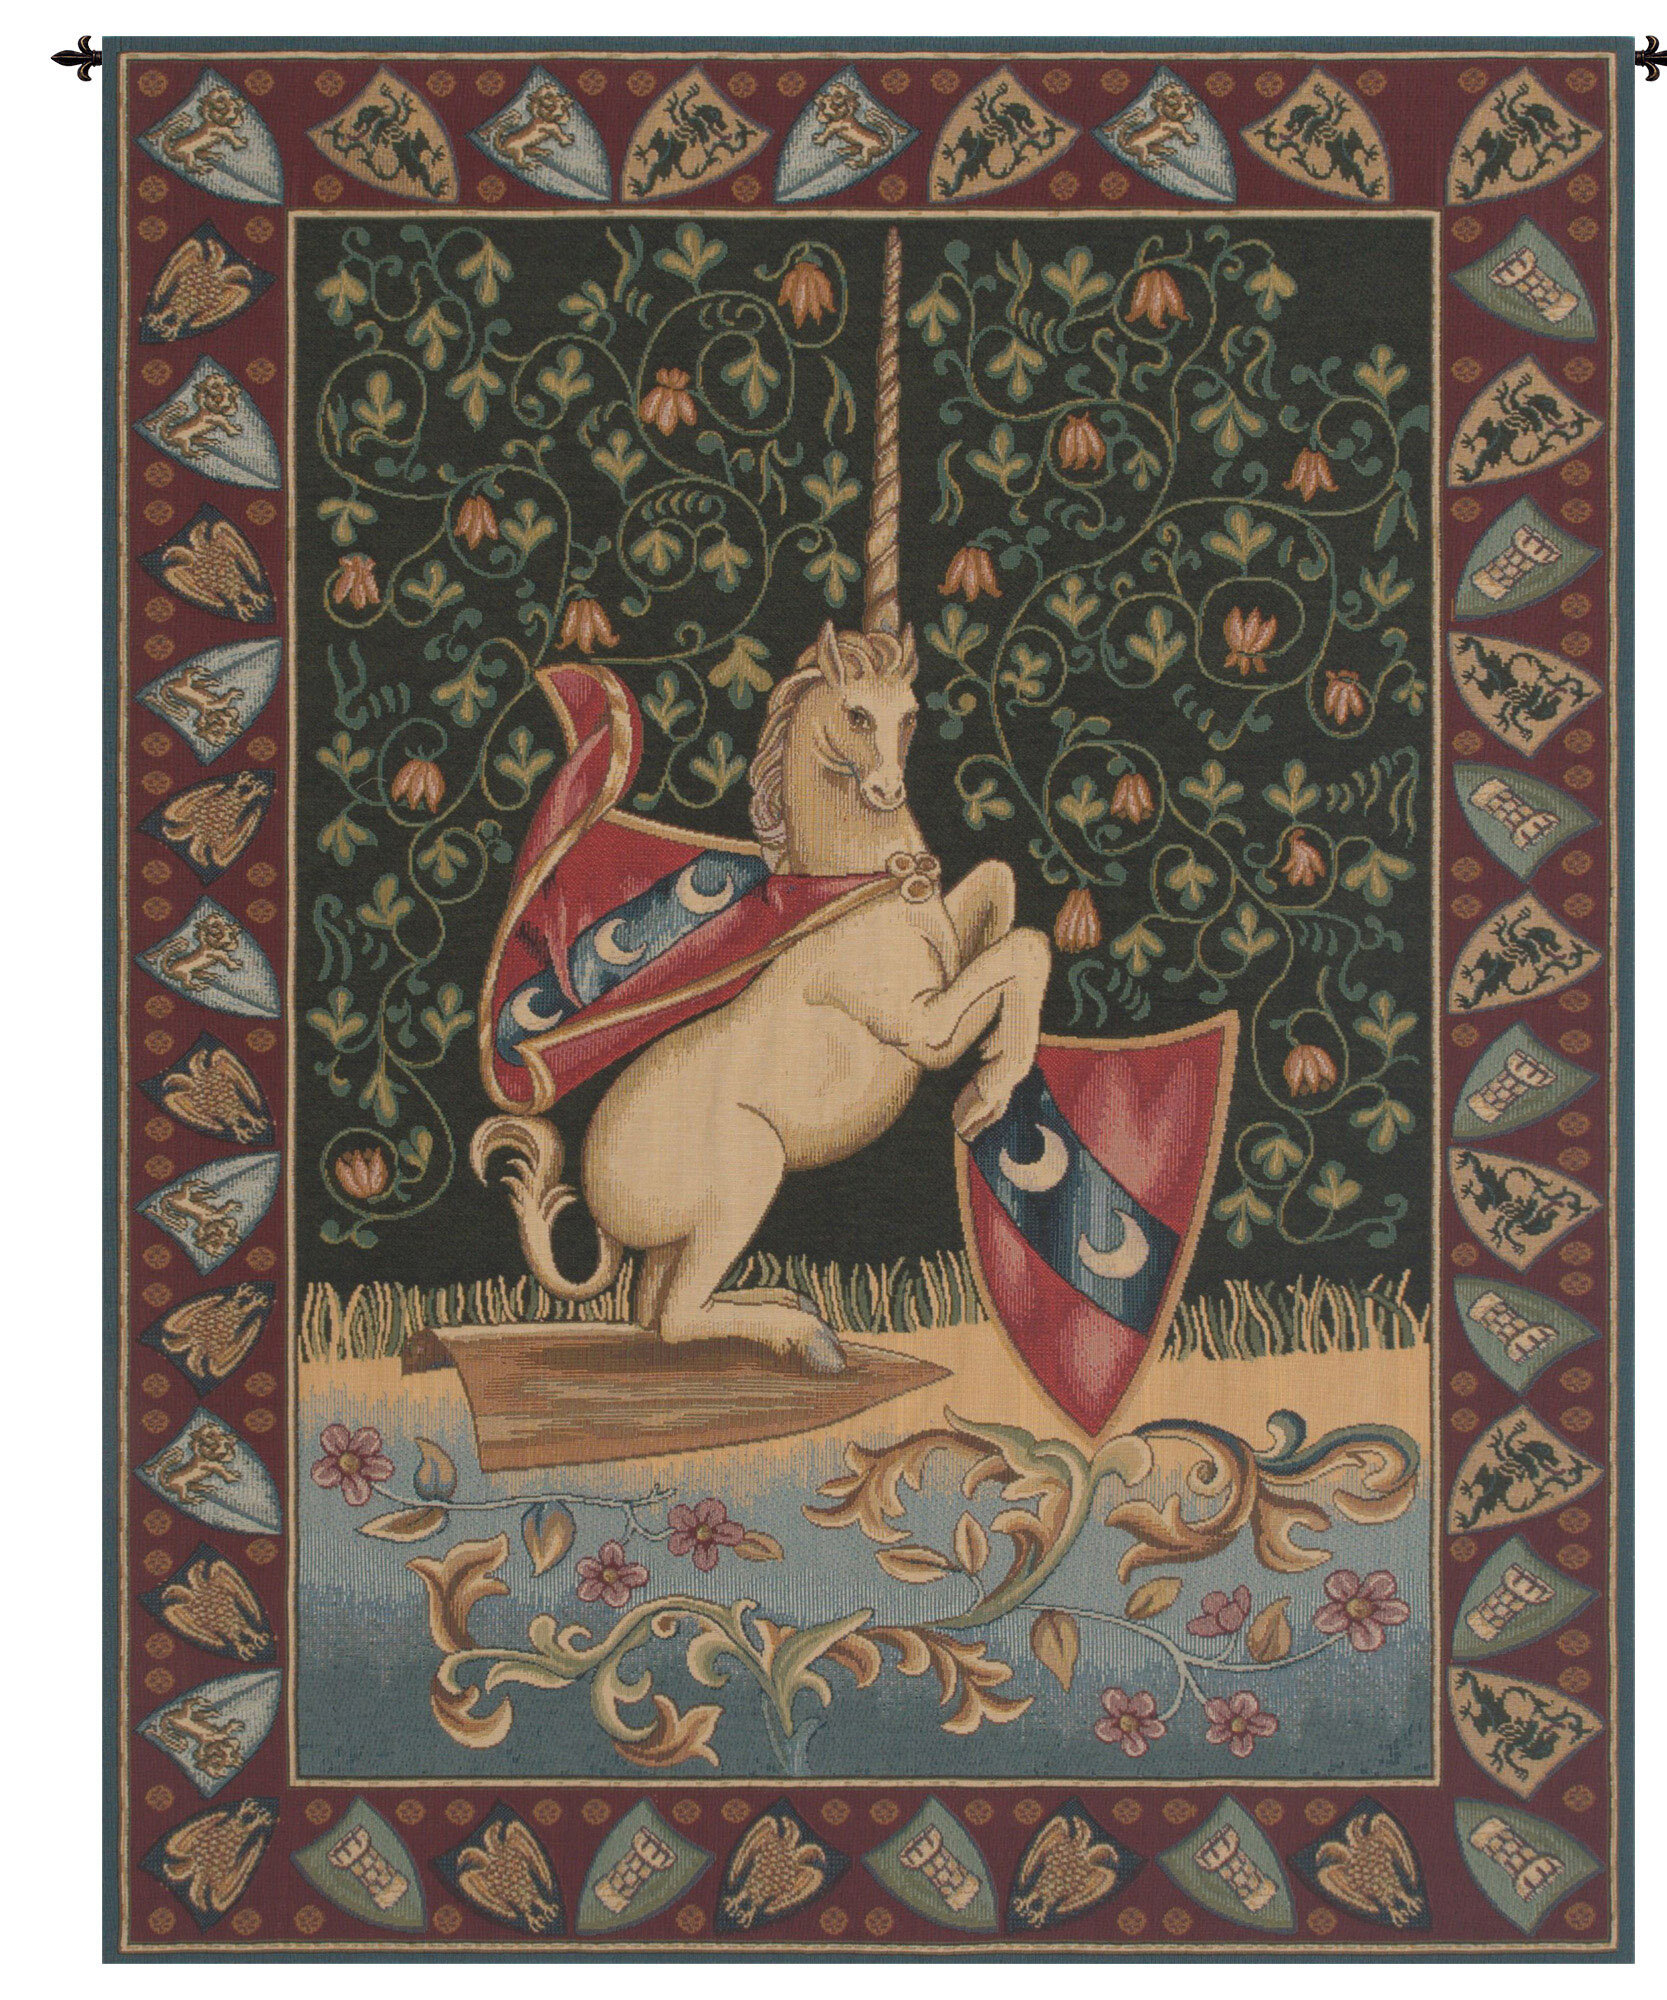 Unicorn Medieval Wall Hanging In Most Current Blended Fabric Bellagio Scalinata Wall Hangings (View 14 of 20)